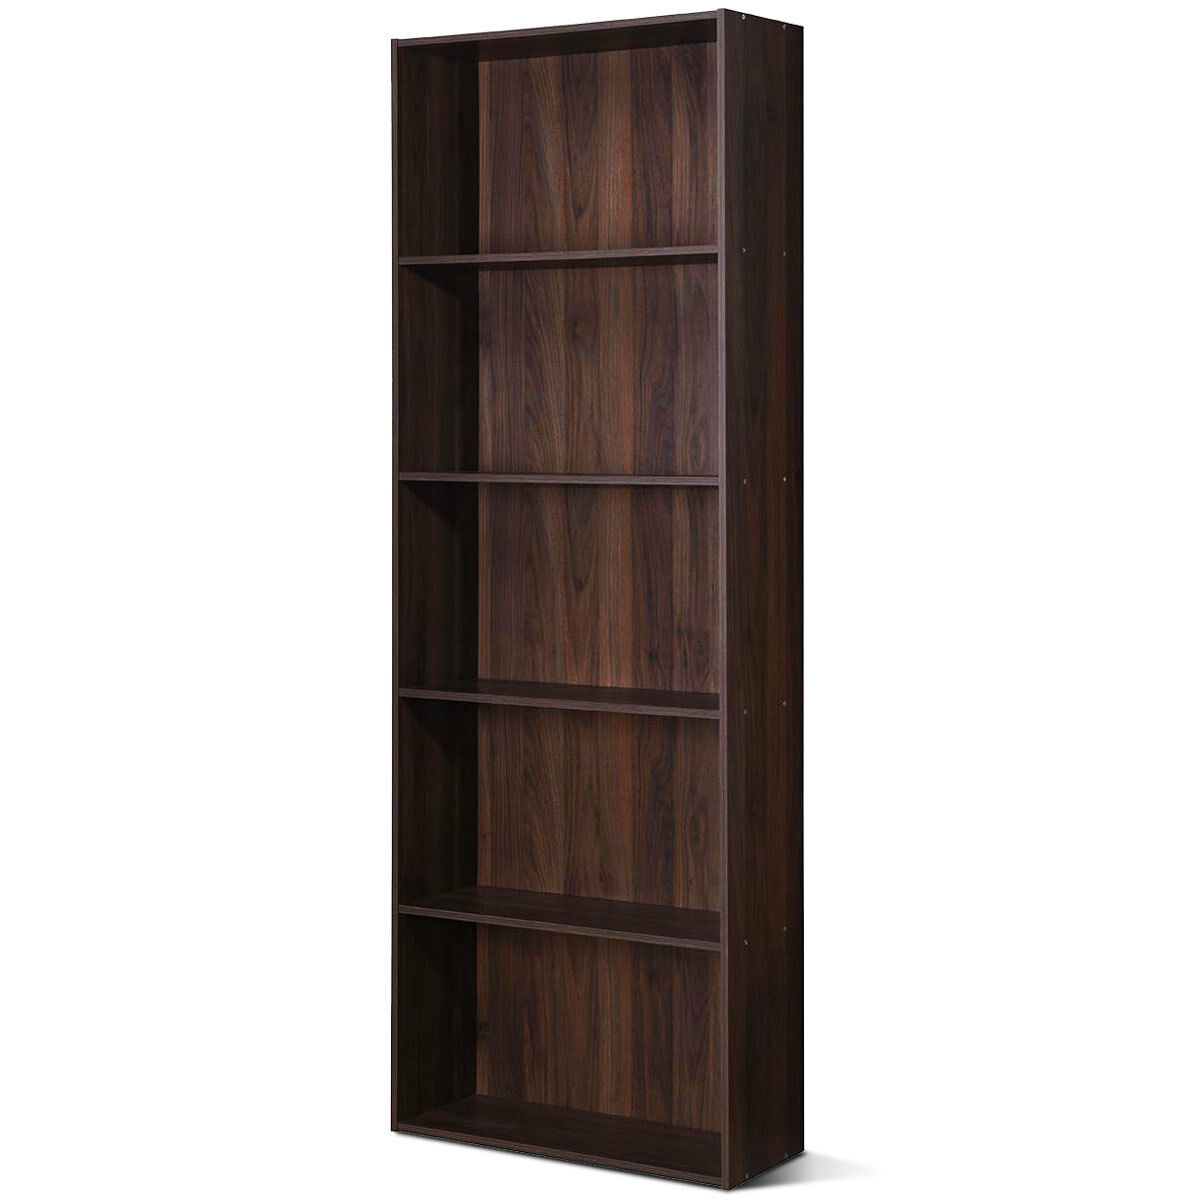 5 Shelf Storage Bookcase Stand Modern Multi Functional Display Cabinet Walnut